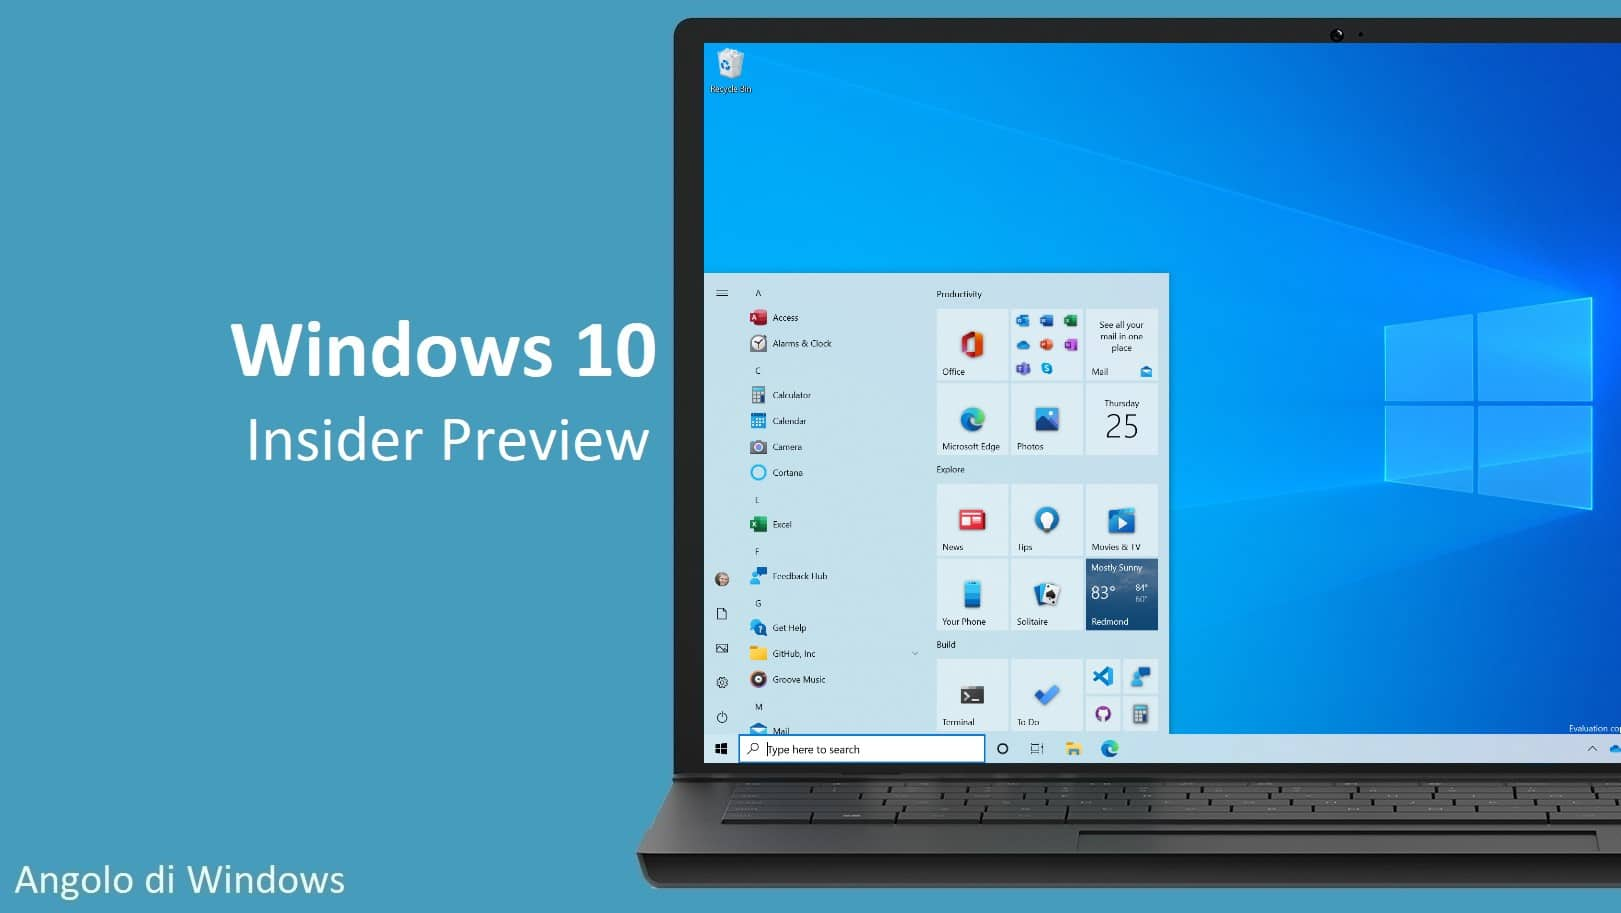 Le ultime novità di Windows 10 Insider Preview nel canale Beta